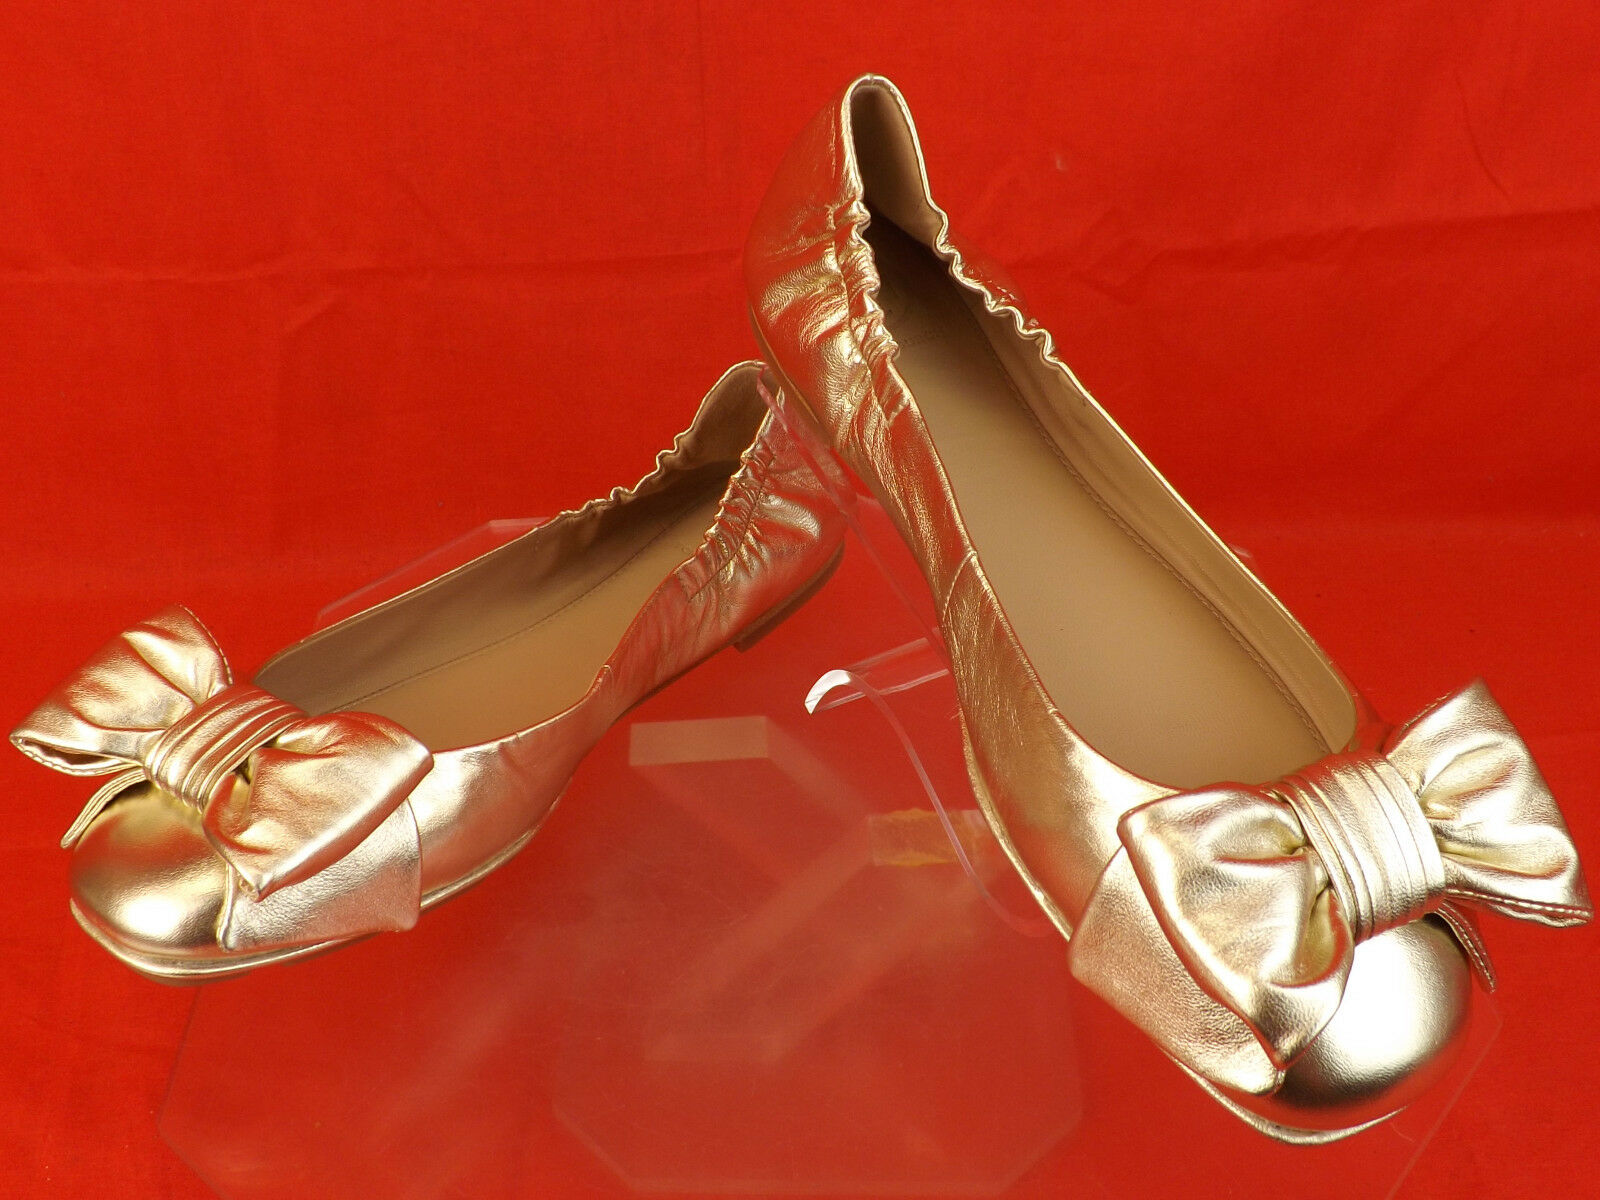 NIB TORY BURCH LIGHT GOLD LEATHER DIVINE BOW GOLD BALLET REVA BALLET GOLD FLATS 10 b12eeb